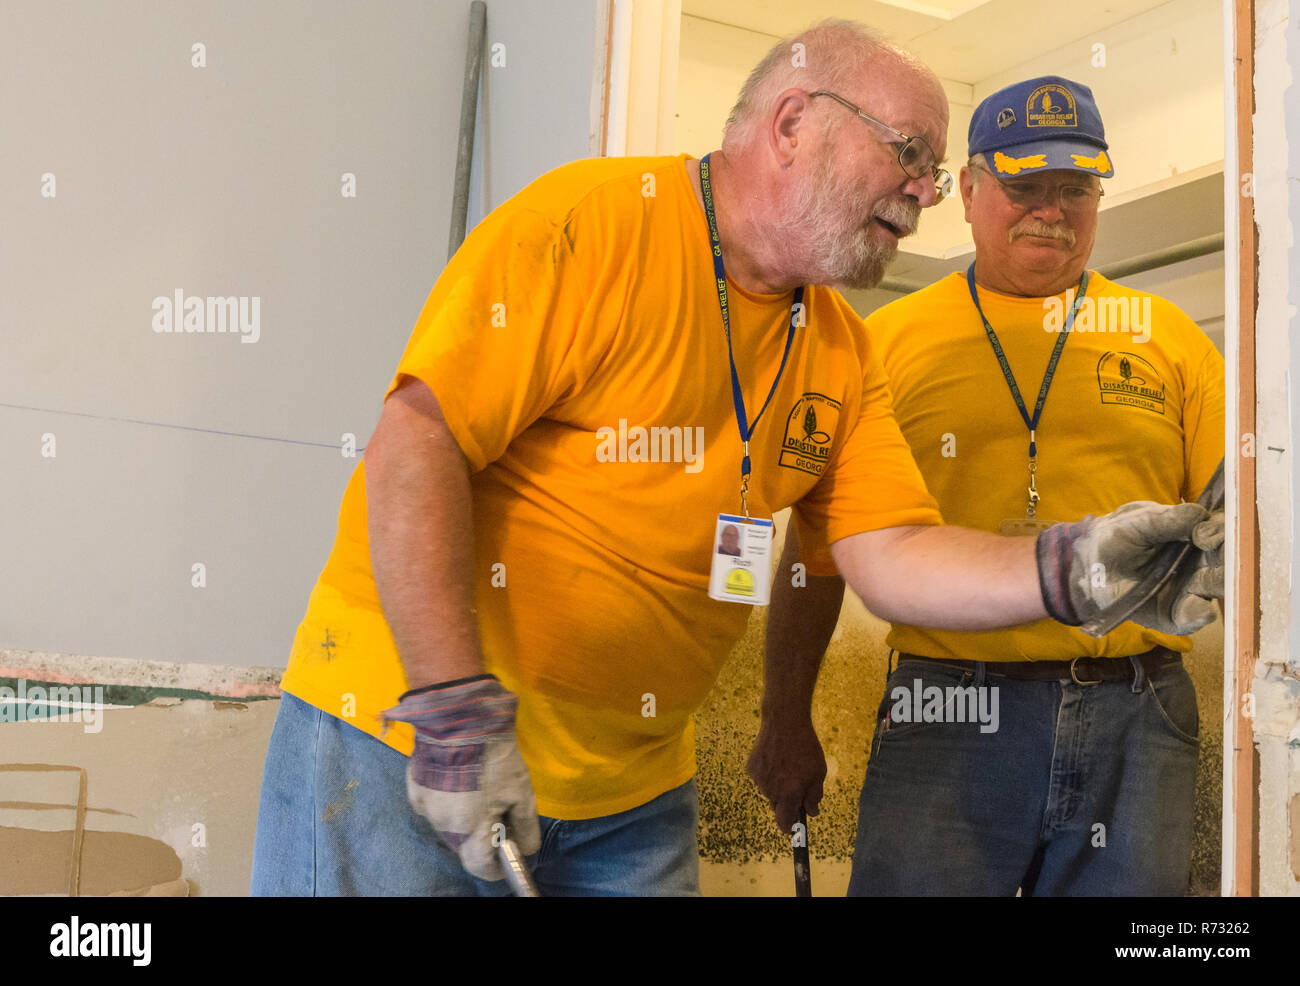 Southern Baptist Disaster Relief volunteers remove a damaged door frame from a flooded house after a flood in Baton Rouge, Louisiana. - Stock Image